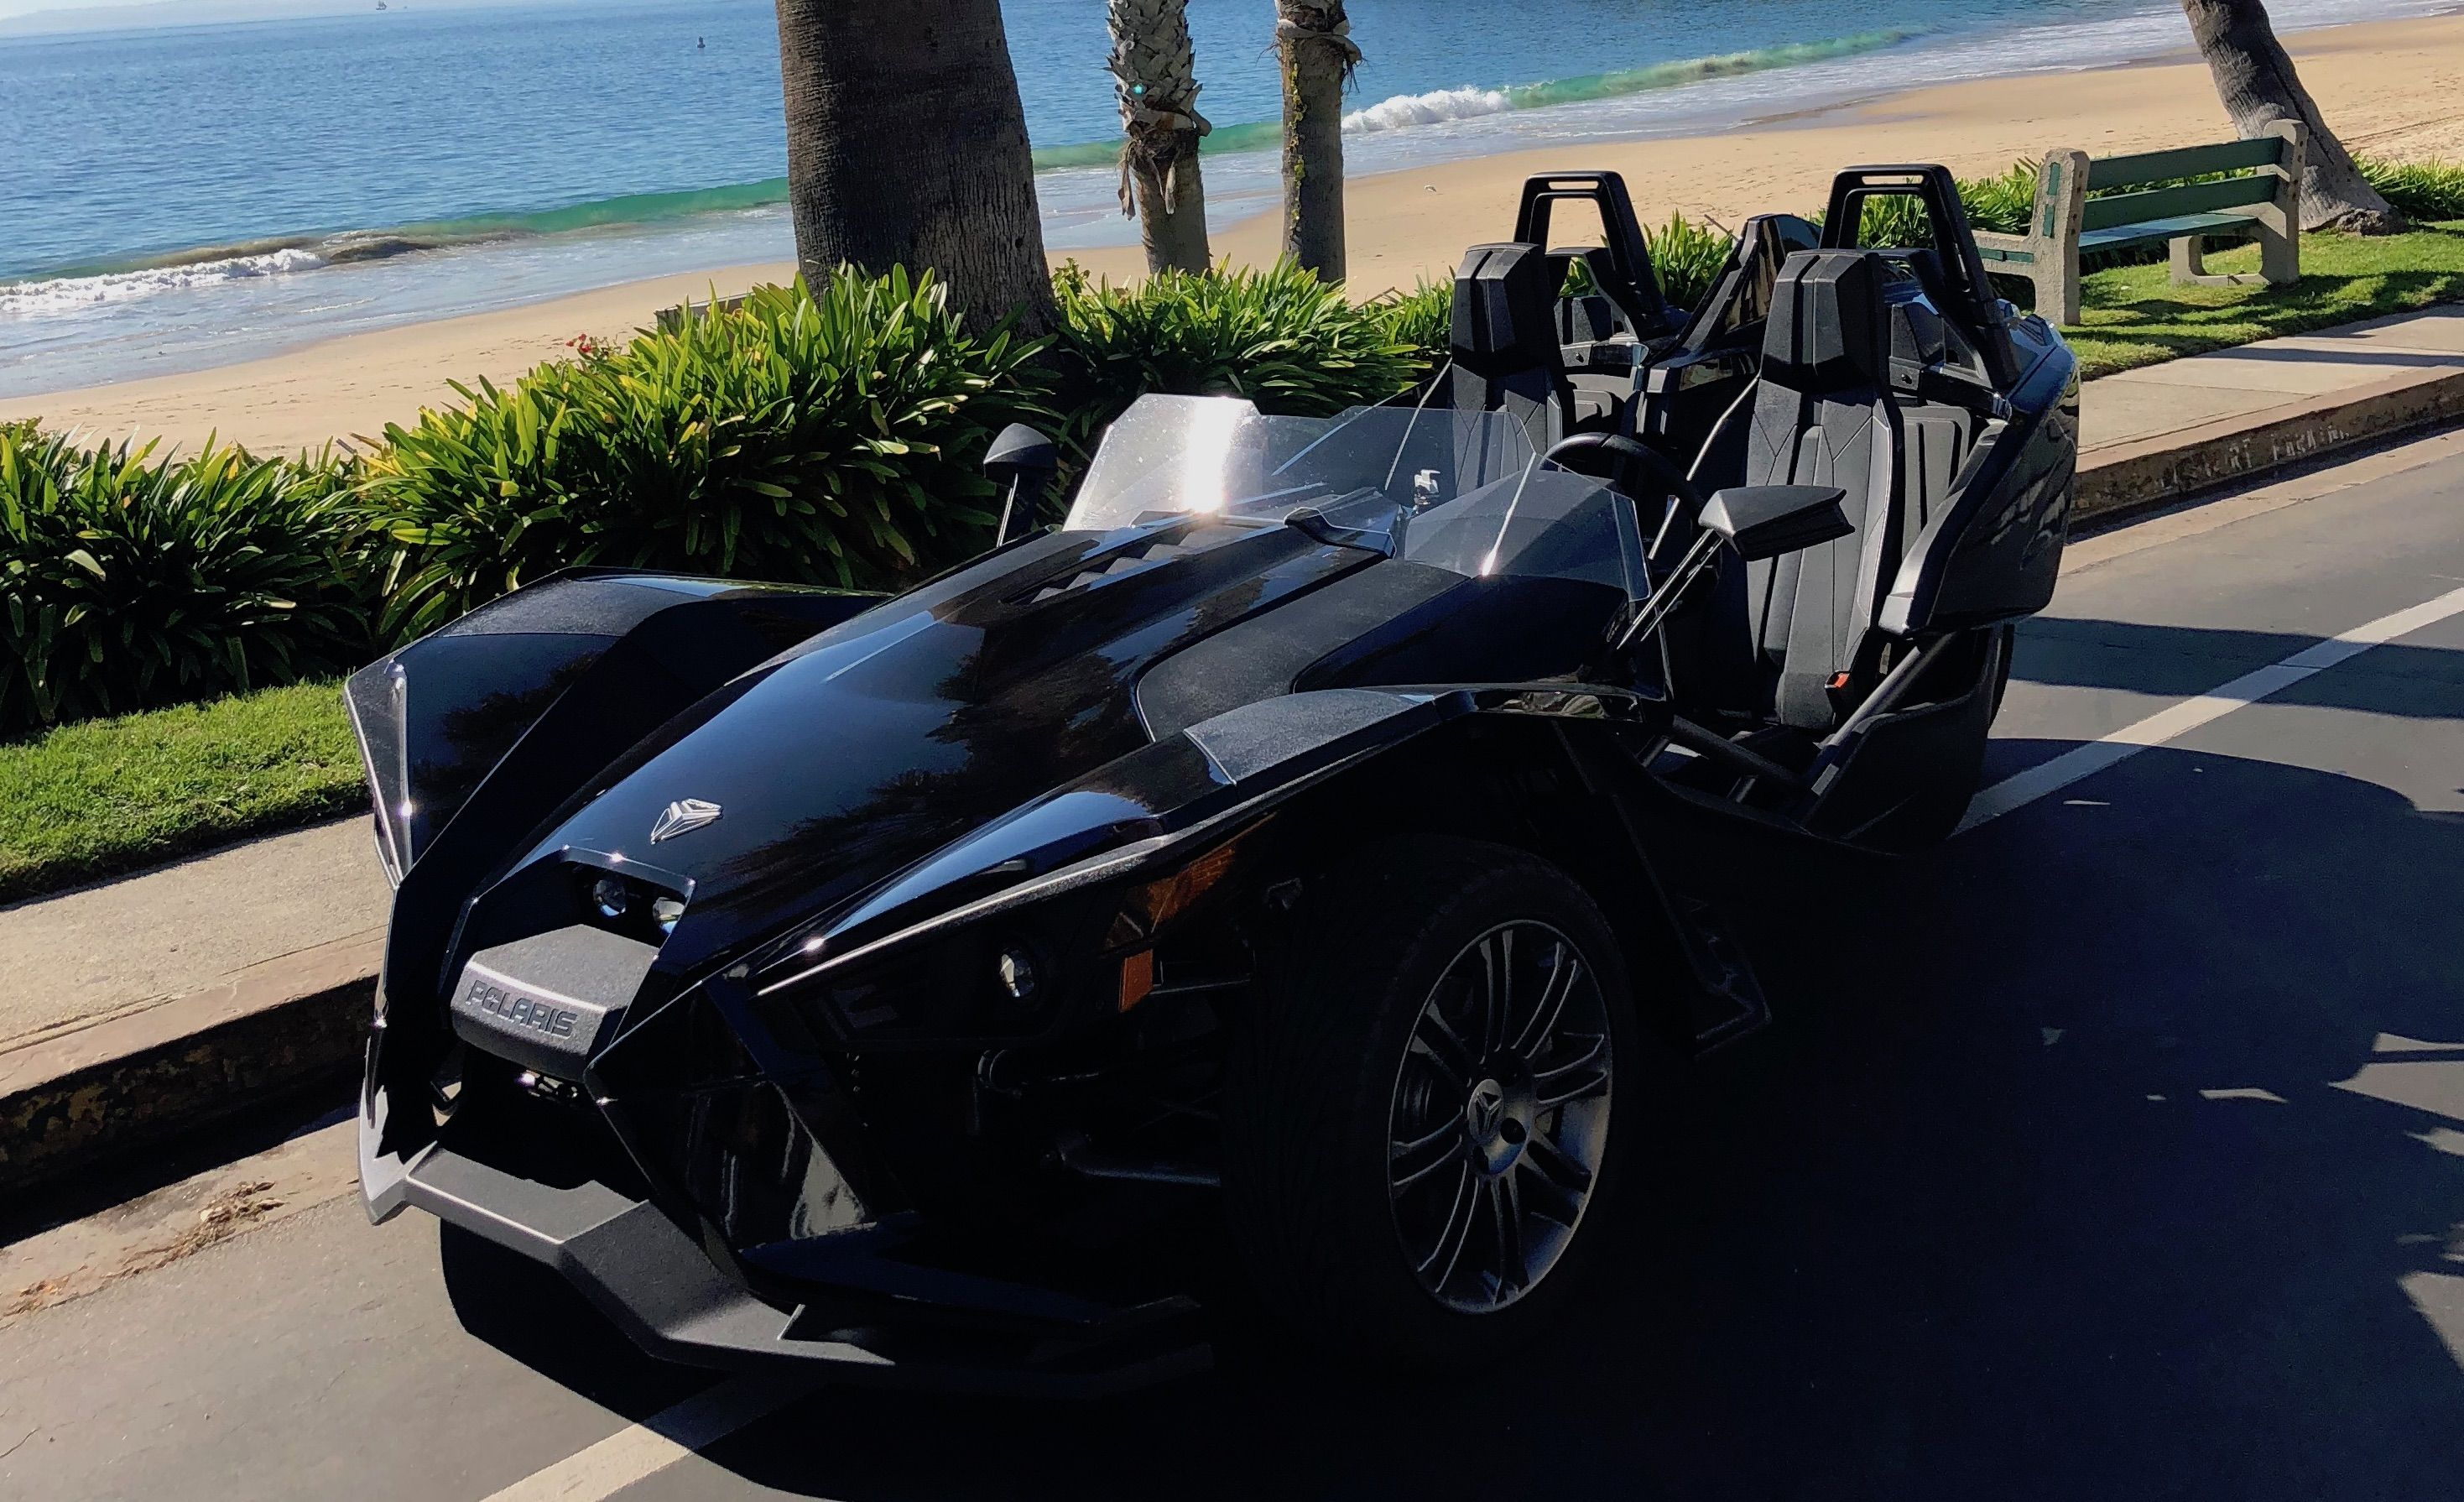 Rent Luis's Polaris Slingshot for a low price on Turo